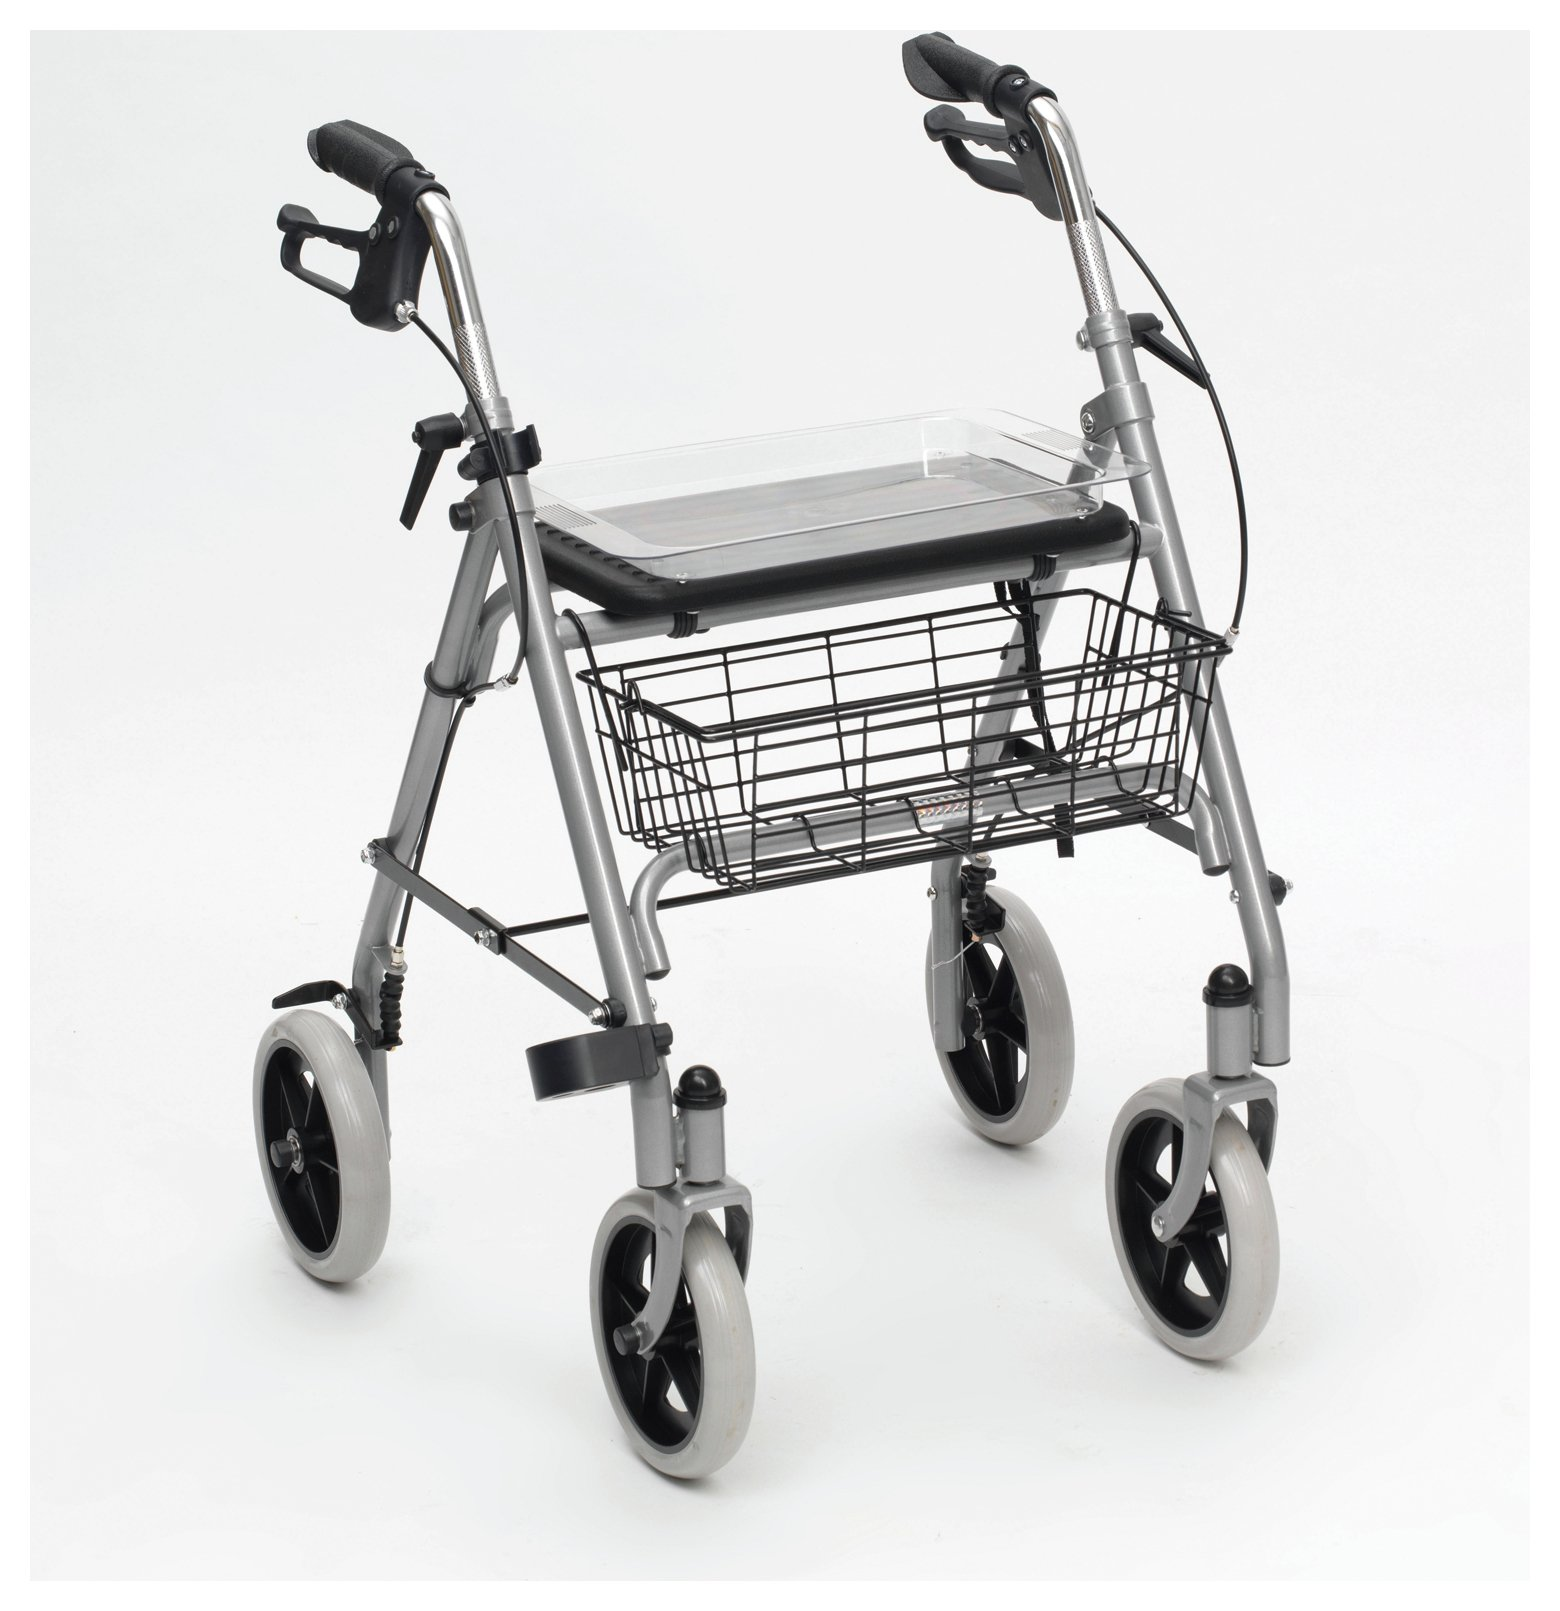 822383233239 Upc Rollator Walker With Fold Up And